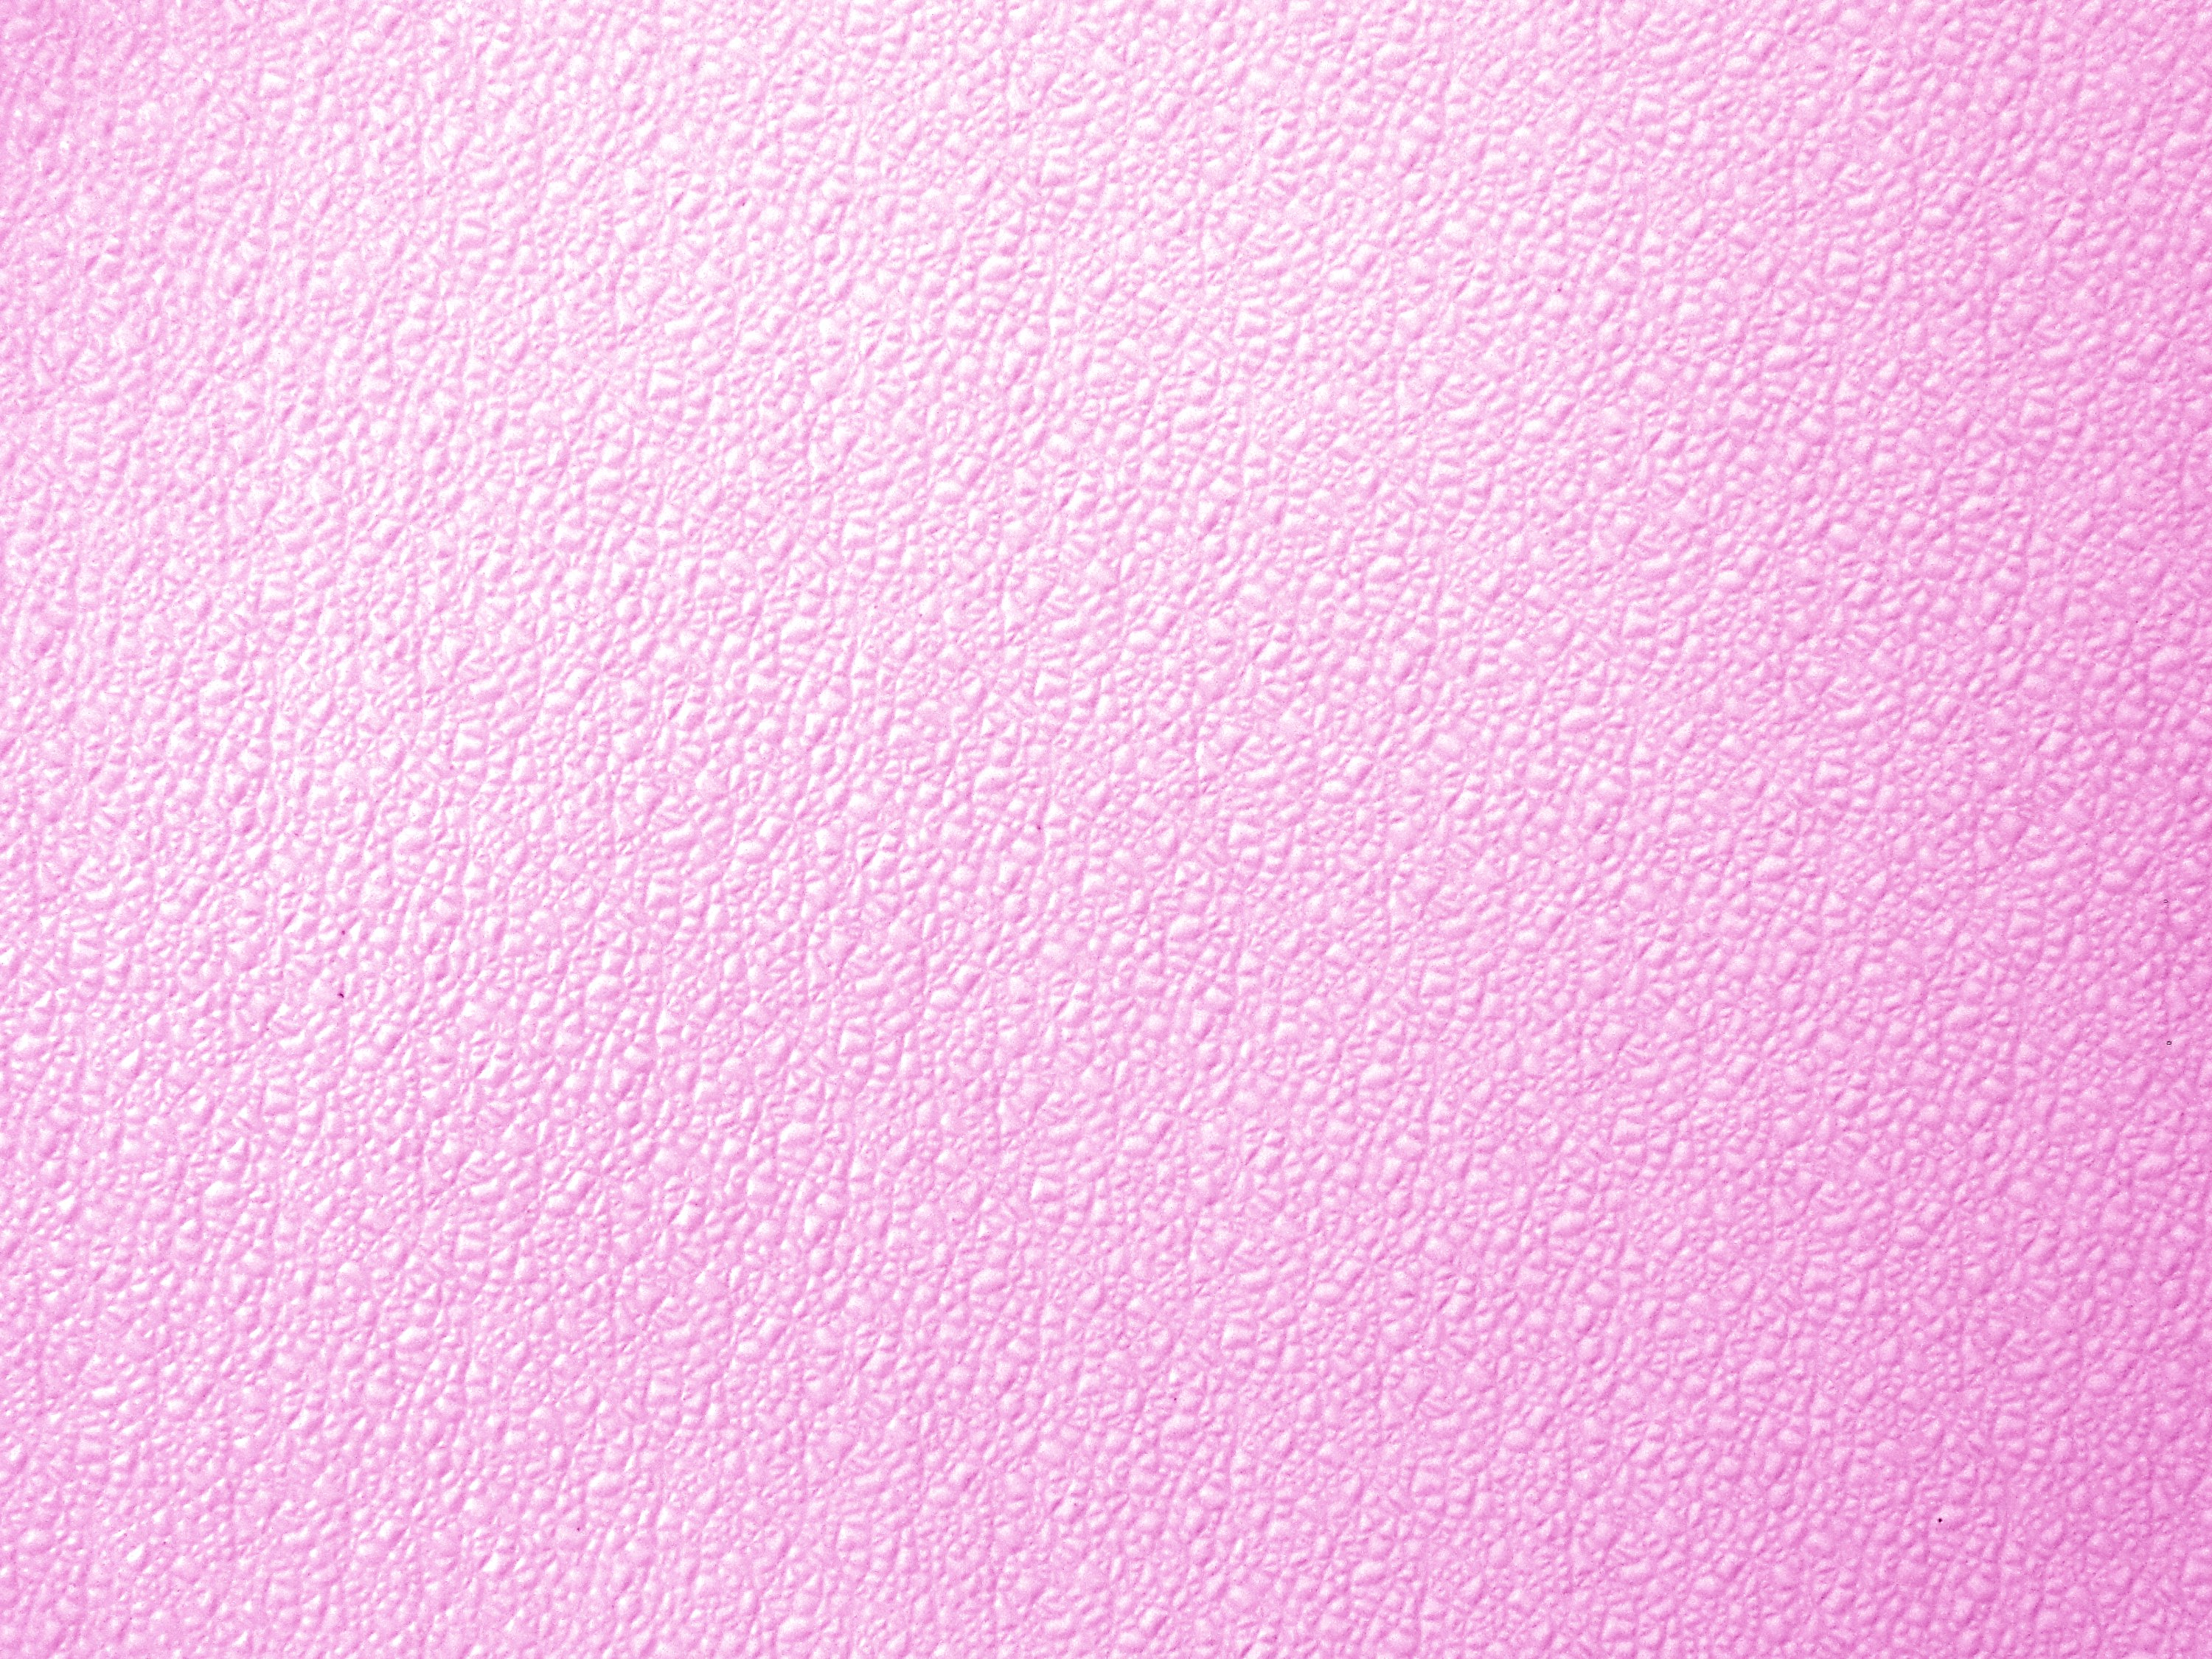 light pink clouds tumblr background pale blue background tumblr 3000x2250